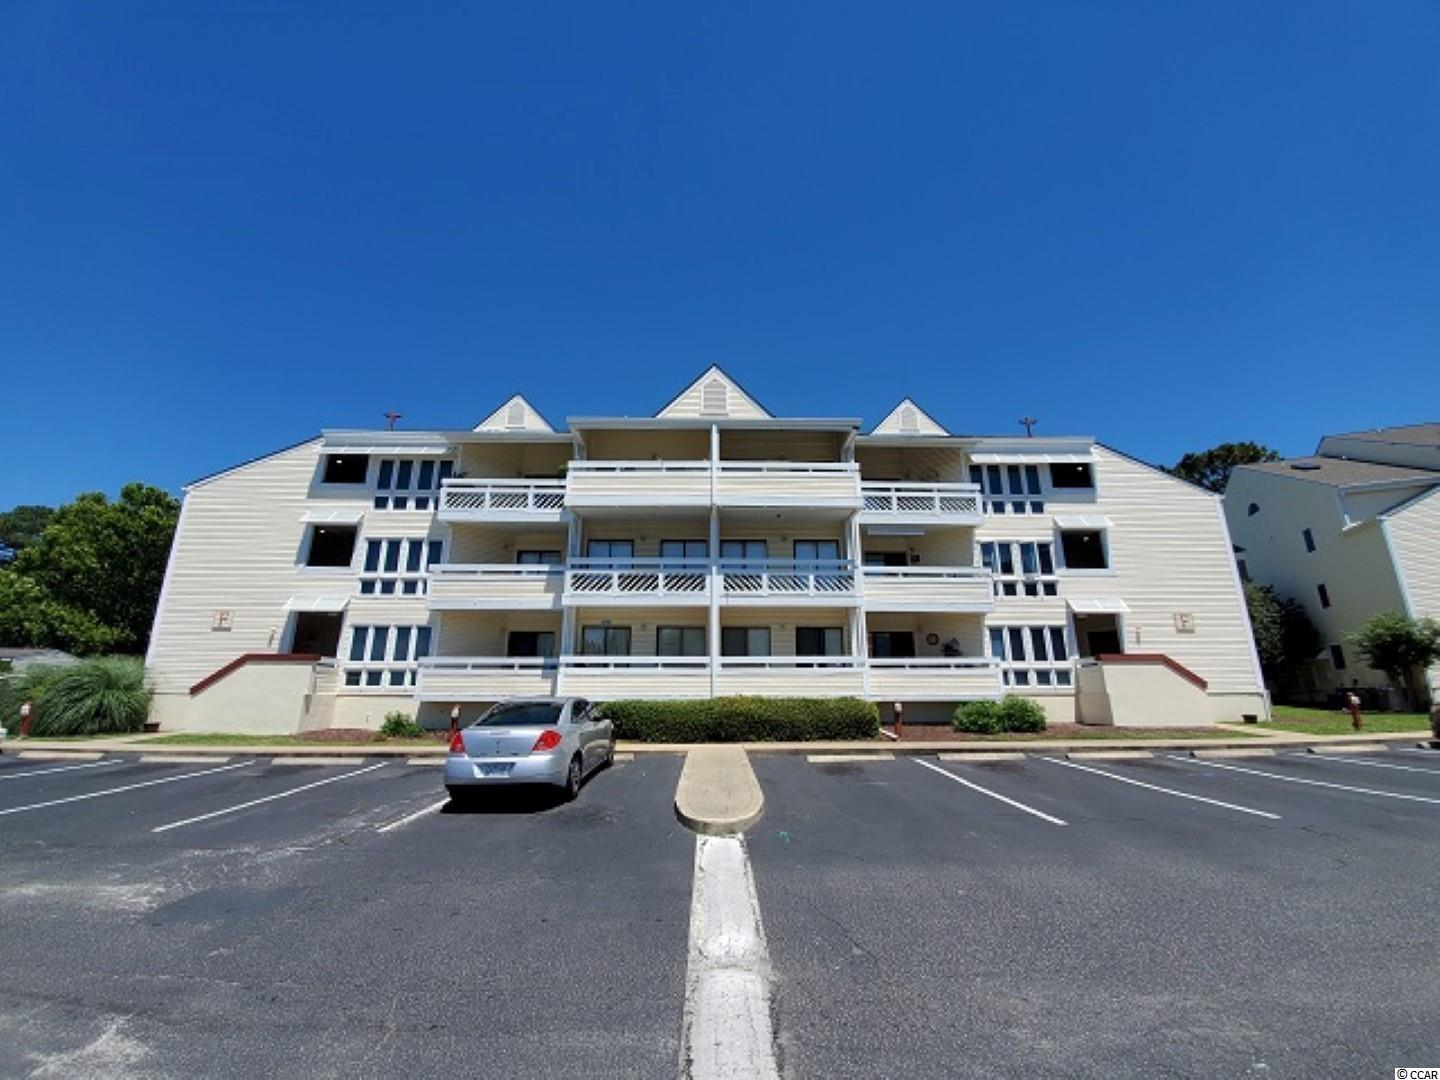 There is plenty of sunlight coming into this North Myrtle Beach Golf and Tennis unit F311!!! There is a bay window at the dining area, a double set of sliding glass doors to the balcony, huge windows above the sliders, and the cathedral ceilings that you get on the 3rd floor. This unit is conveniently located, near Hwy 17 which is the main road north to south along the Myrtle Beach area, to medical facilities, golf, dining, entertainment, shopping, and the sandy beaches of the Atlantic Ocean are not far away. Amenities include an outdoor pool, grill area, and tennis courts, owners are allowed pets, & owners are allowed GOLF CARTS. The HVAC-IS BRAND NEW IN 2020 THE ENTIRE INSIDE AND OUTSIDE UNITS WERE REPLACED AND ALL DUCTWORK. HOT WATER HEATER IN 2019. PLUS SOME OF THE ELECTRICAL AND PLUMBING IS NEW AS WELL. Call today & schedule a showing and/or make an offer. You can also watch the virtual tour then request more info. We'll see ya soon!! All square footage is approximate and not guaranteed. The buyer is responsible for verification.